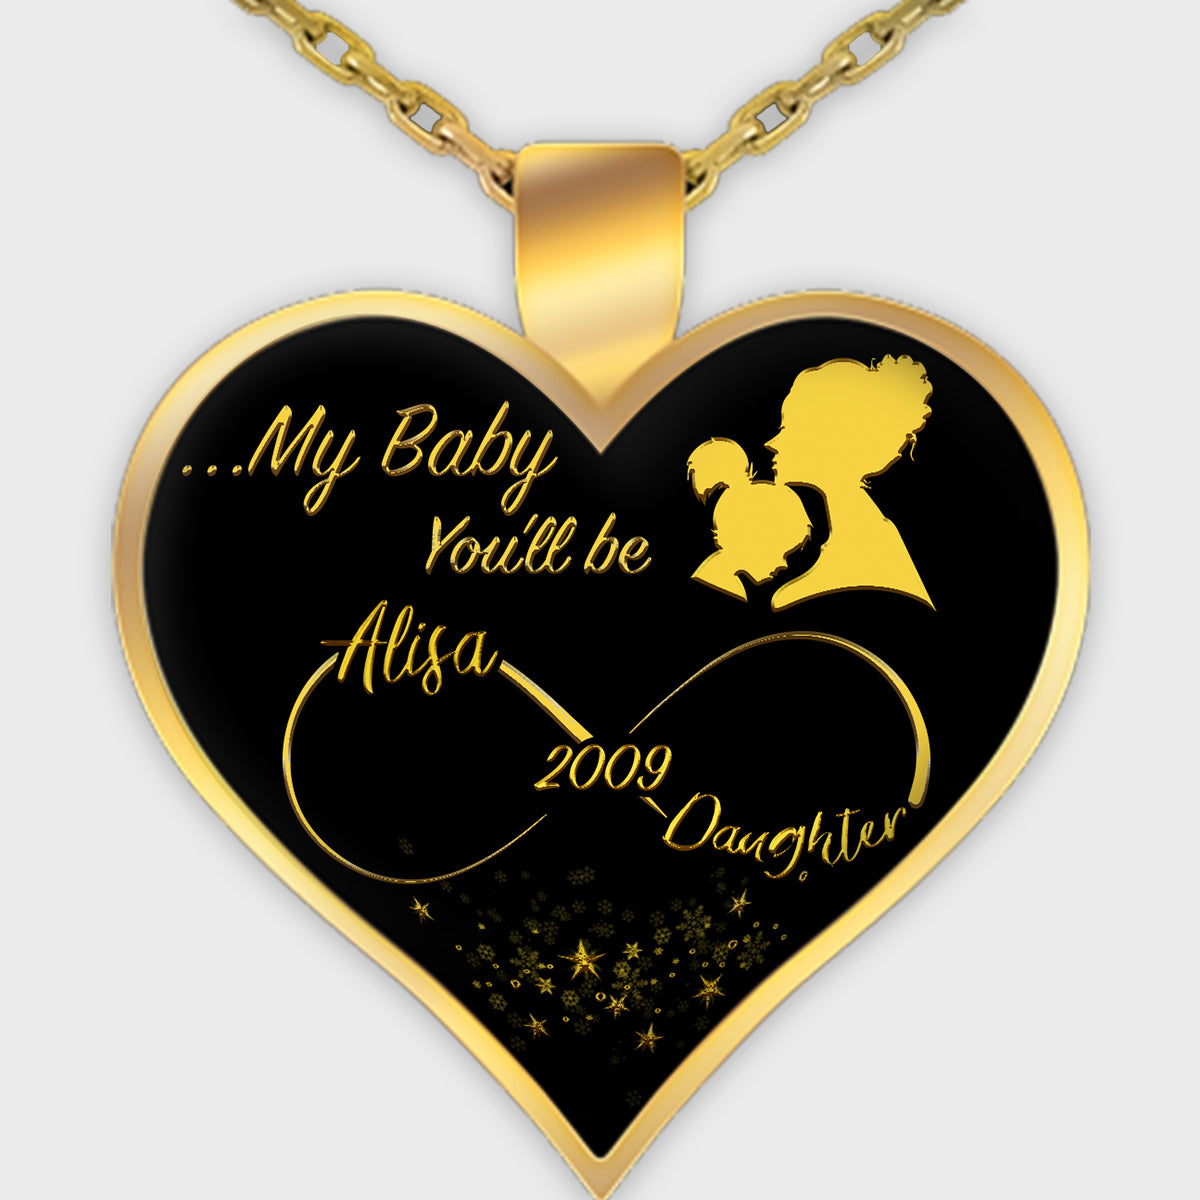 """My Baby, You'll be ..."" Personalized Necklace For Daughter"